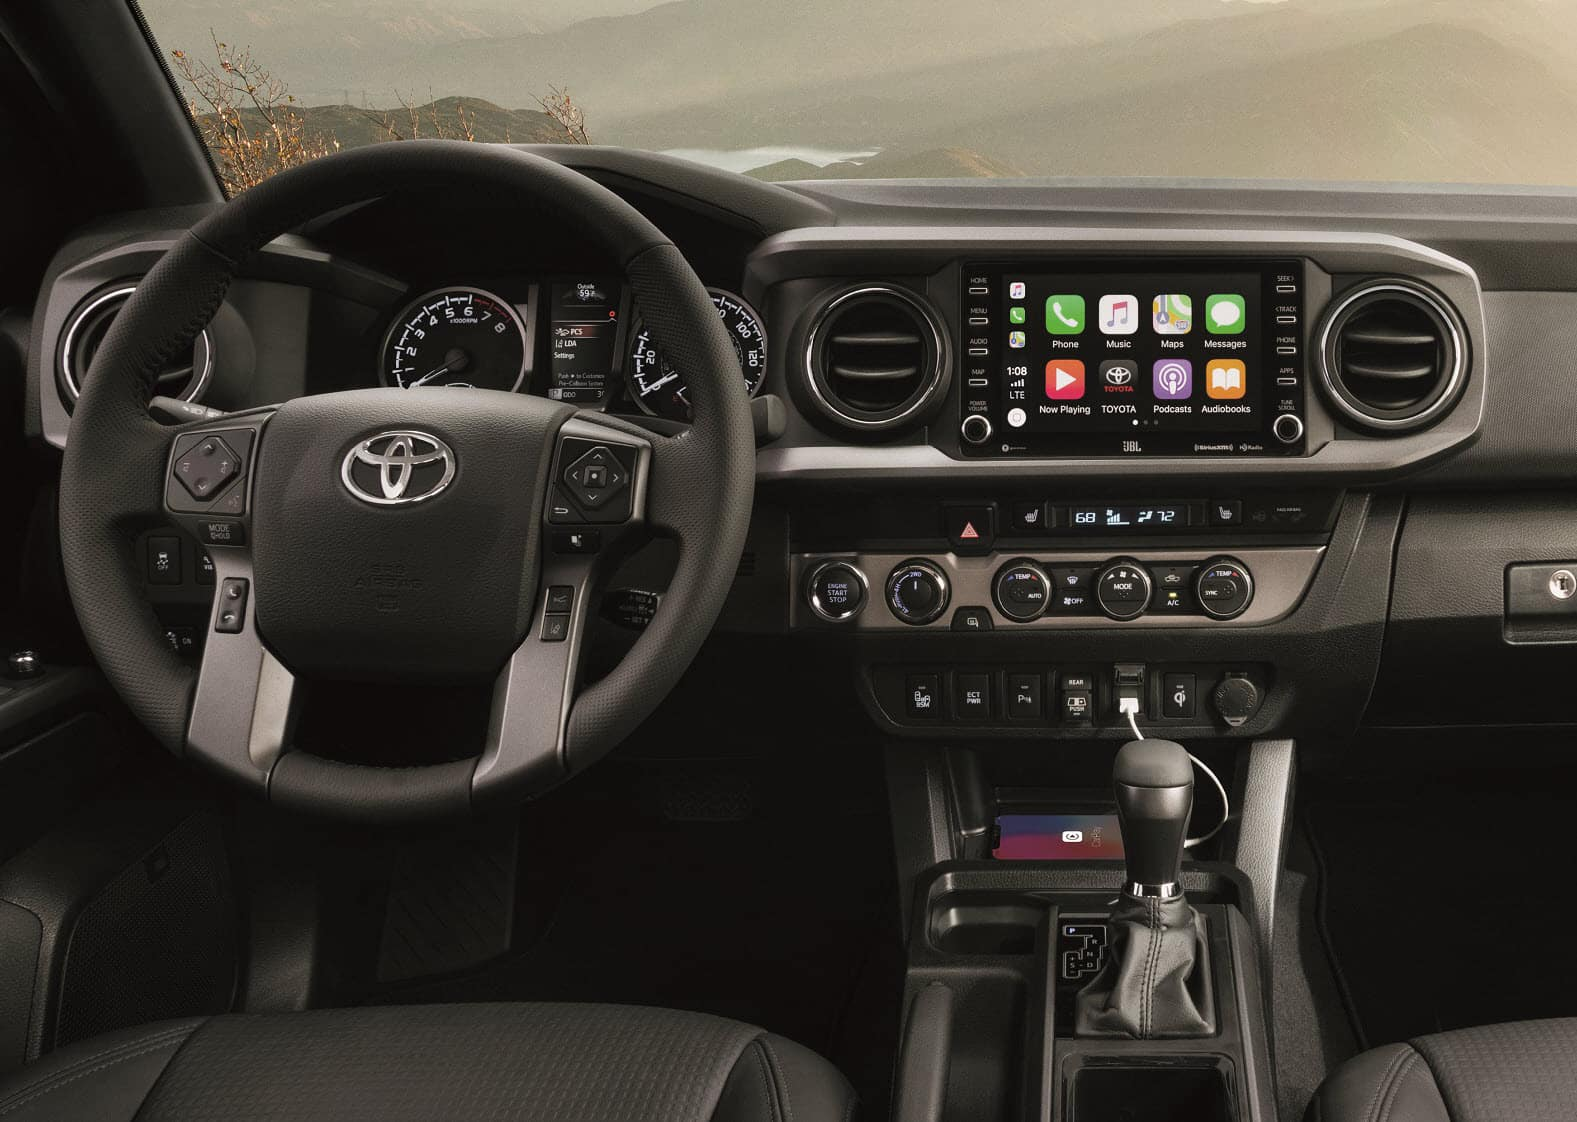 2020 Toyota Tacoma Interior with Apple CarPlay® Technology